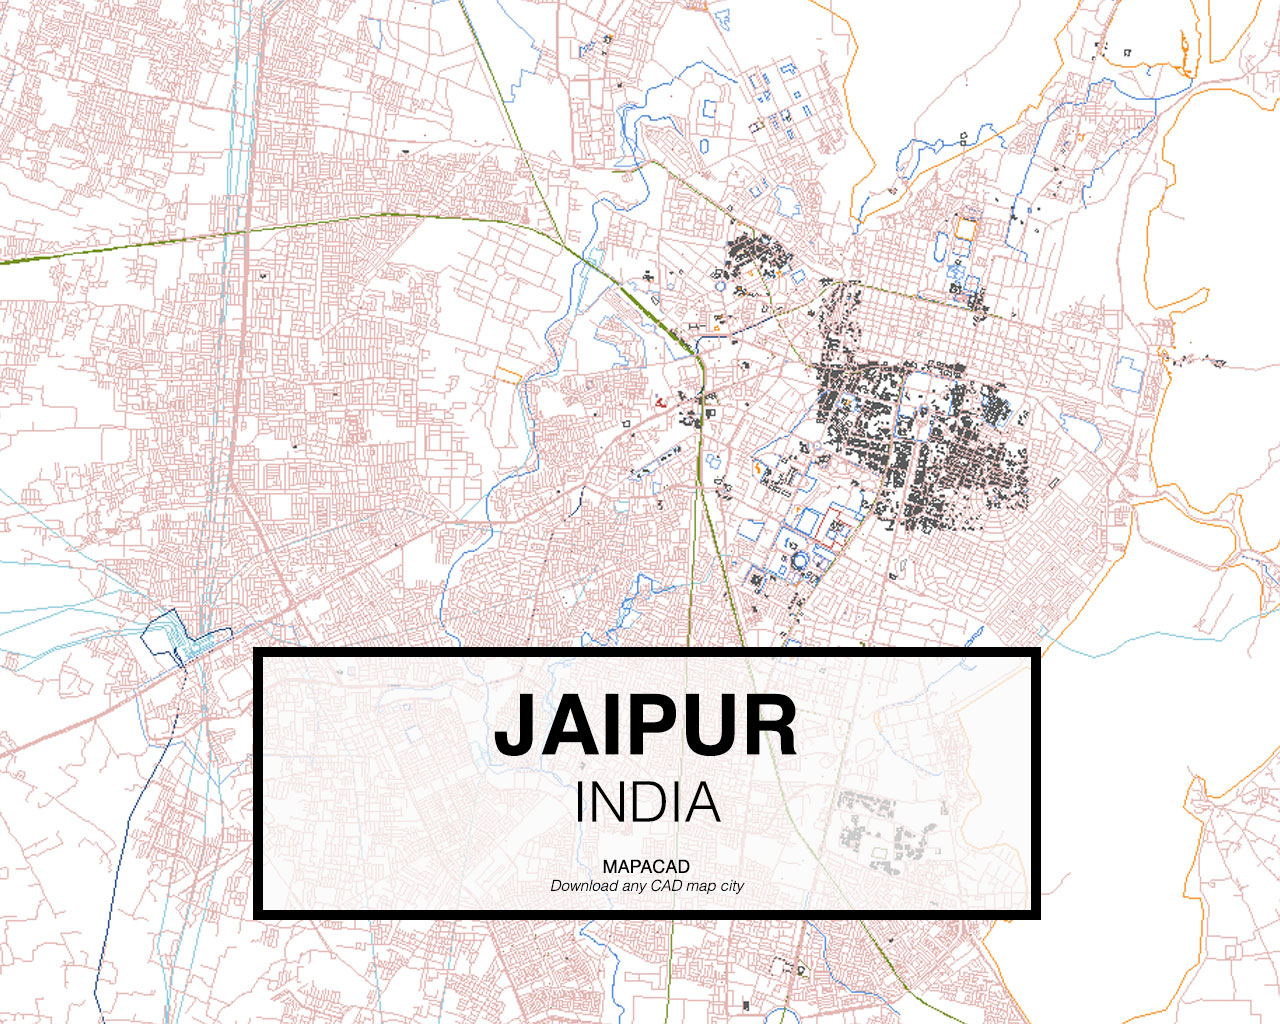 Download kolkata dwg mapacad jaipur india 01 mapacad download map cad dwg gumiabroncs Gallery